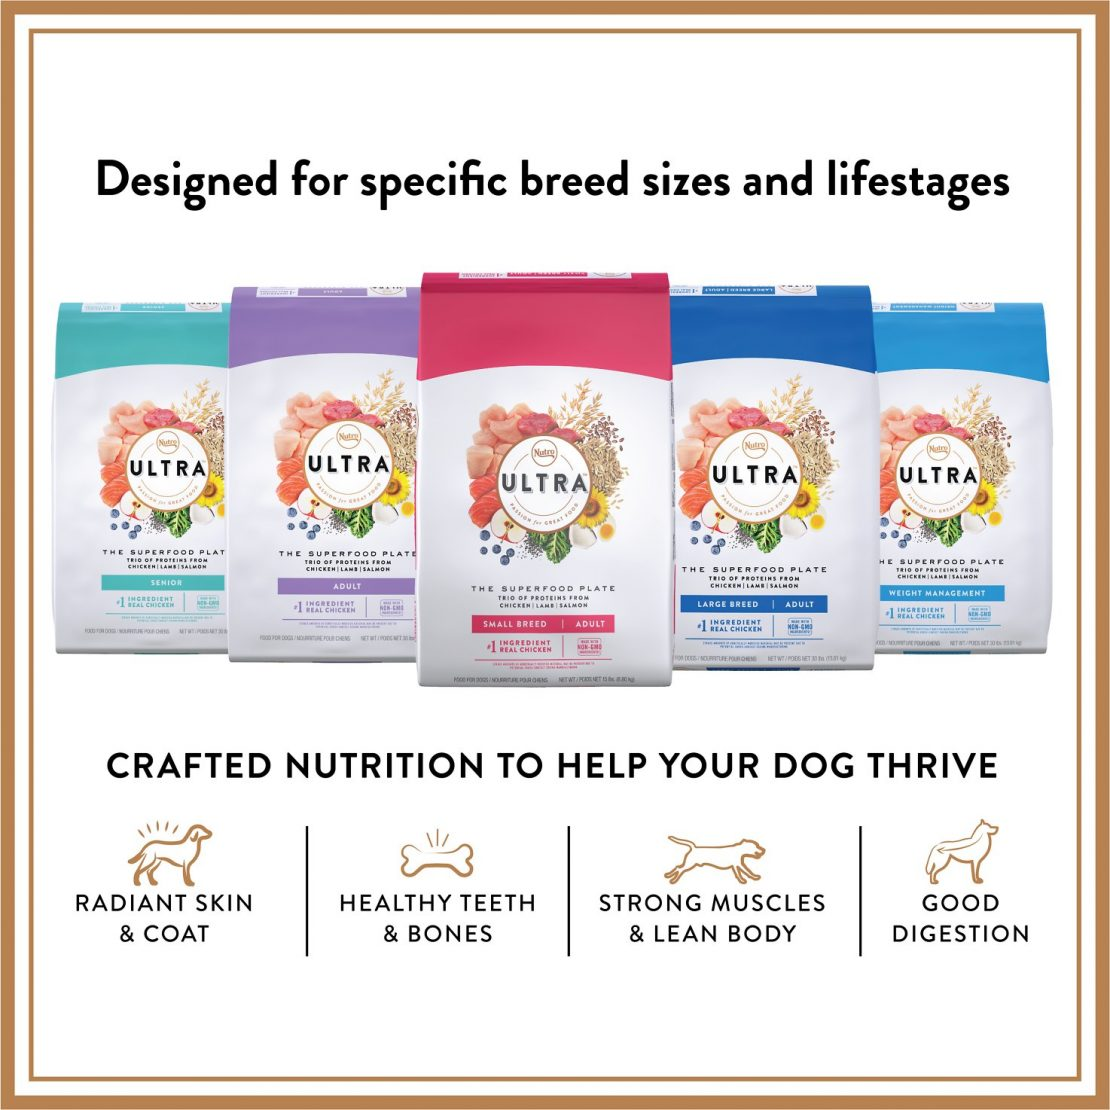 Nutro Ultra Dry Dog Food - The Superfood Plate